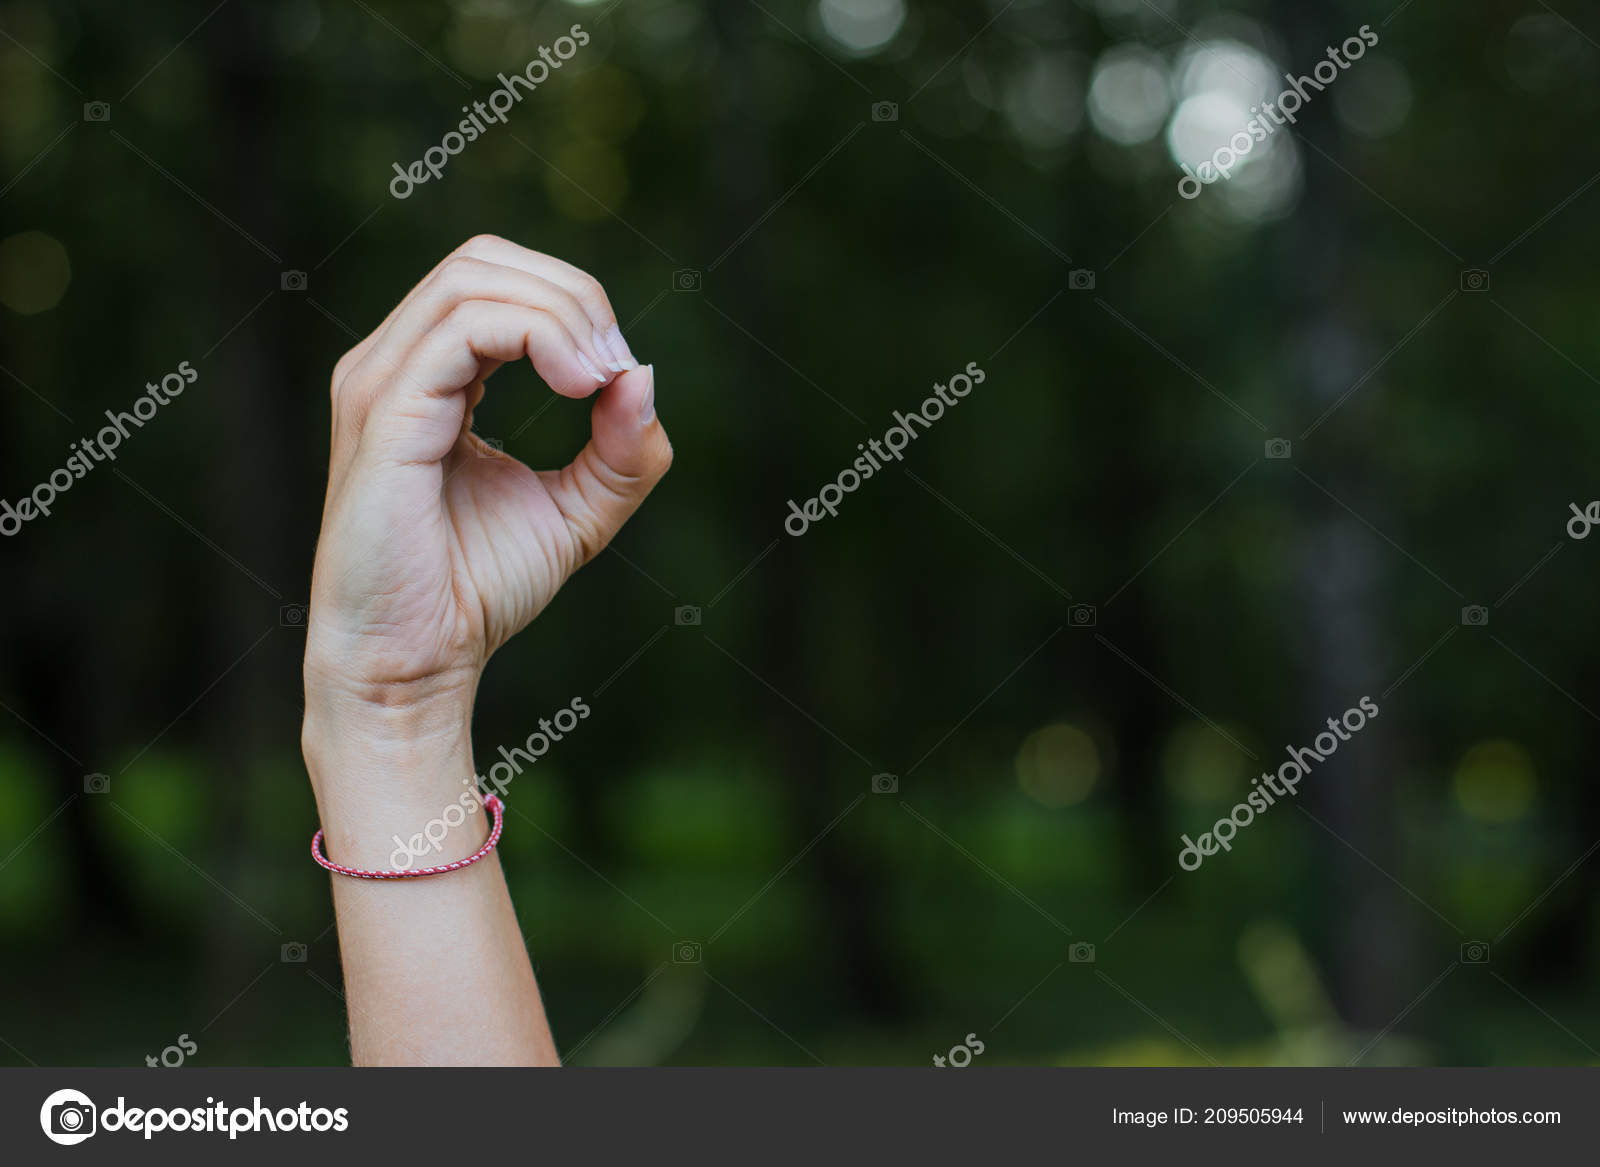 Non Verbal People Communication Concept Dactyl Alphabet Person Hand